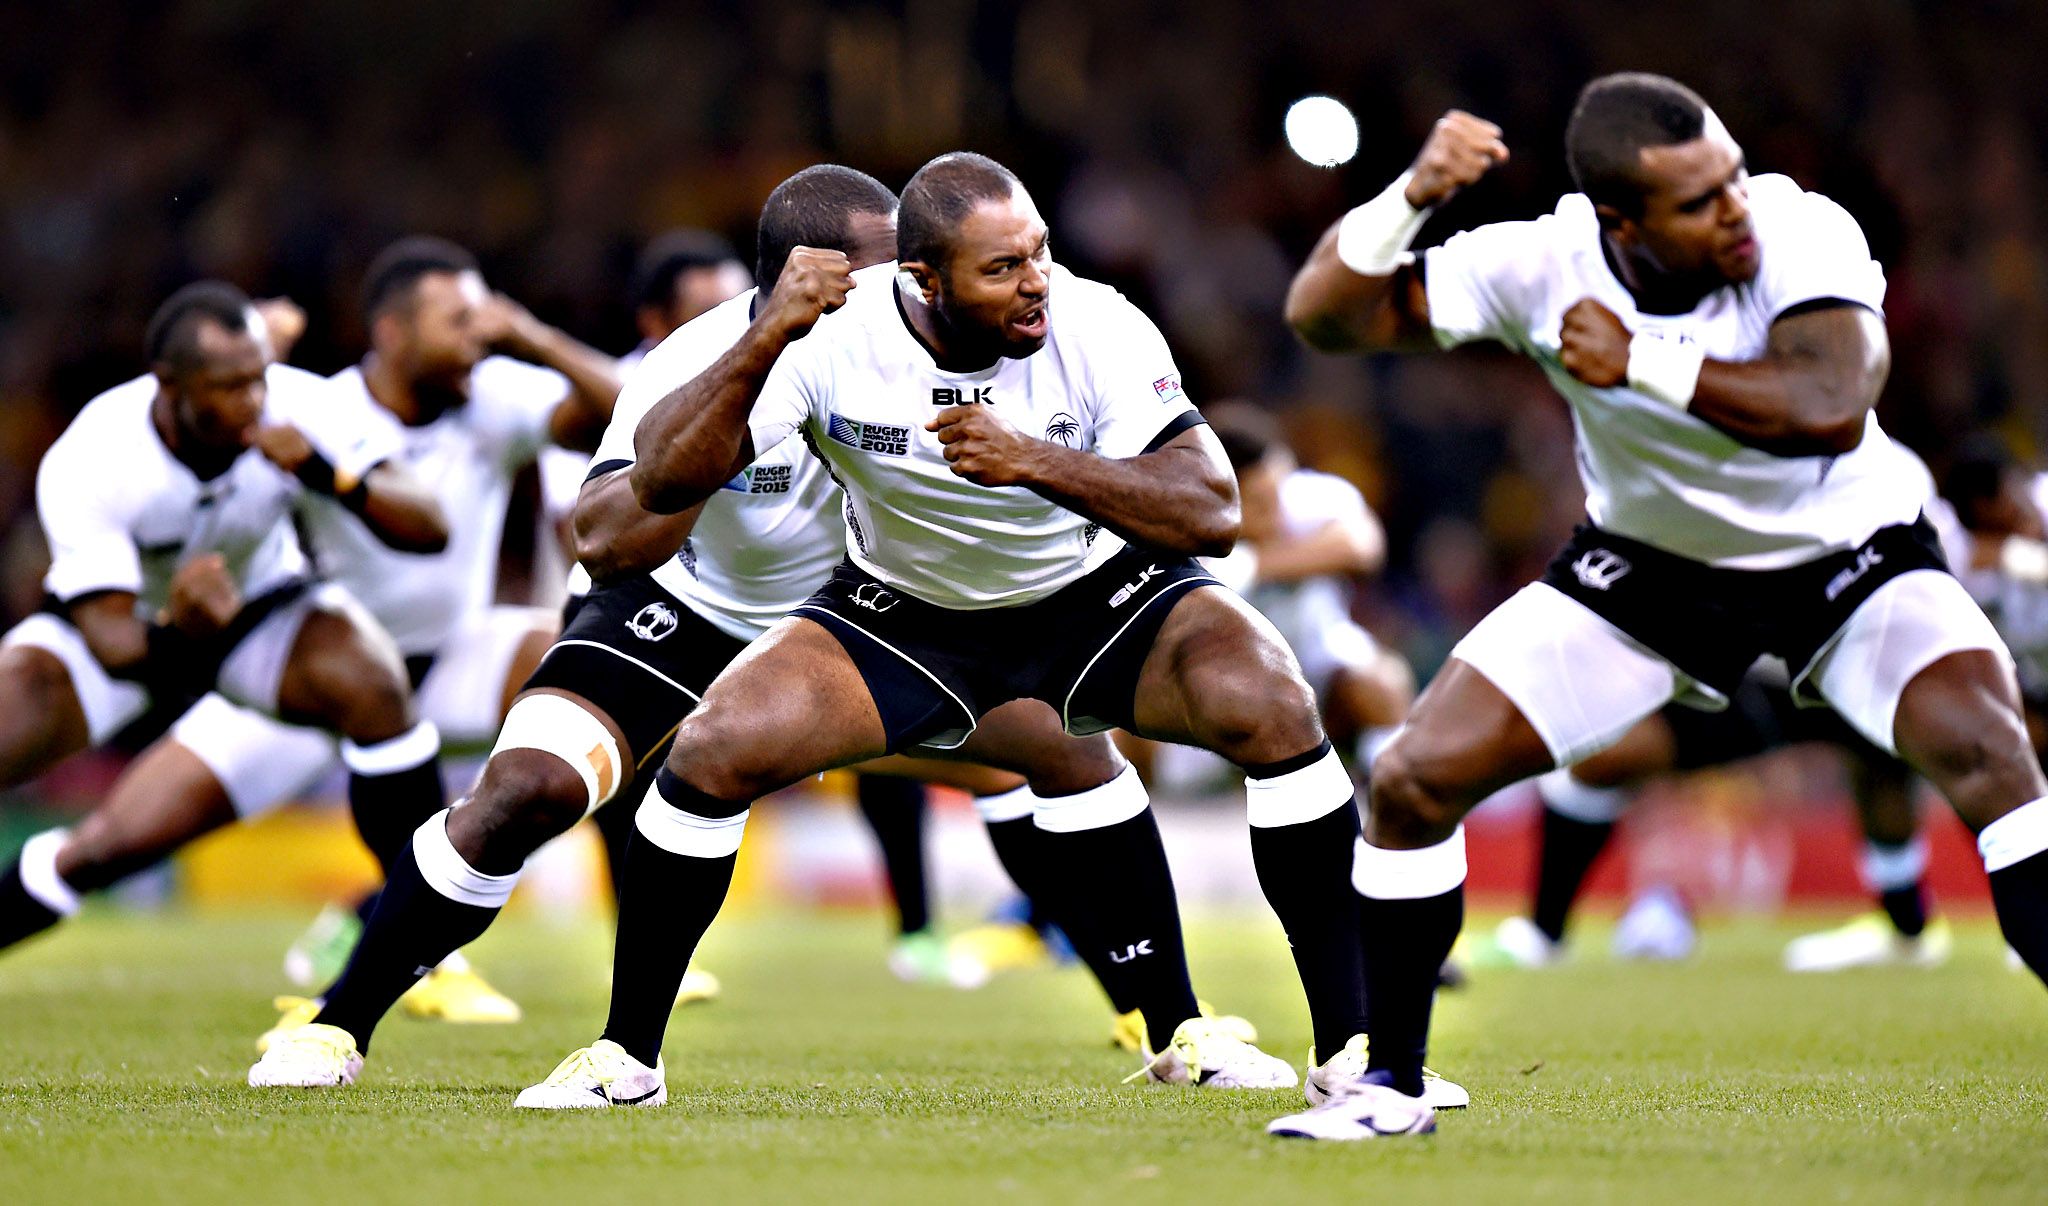 Fiji perform the Cibi before the Rugby World Cup match at the Millennium Stadium, Cardiff